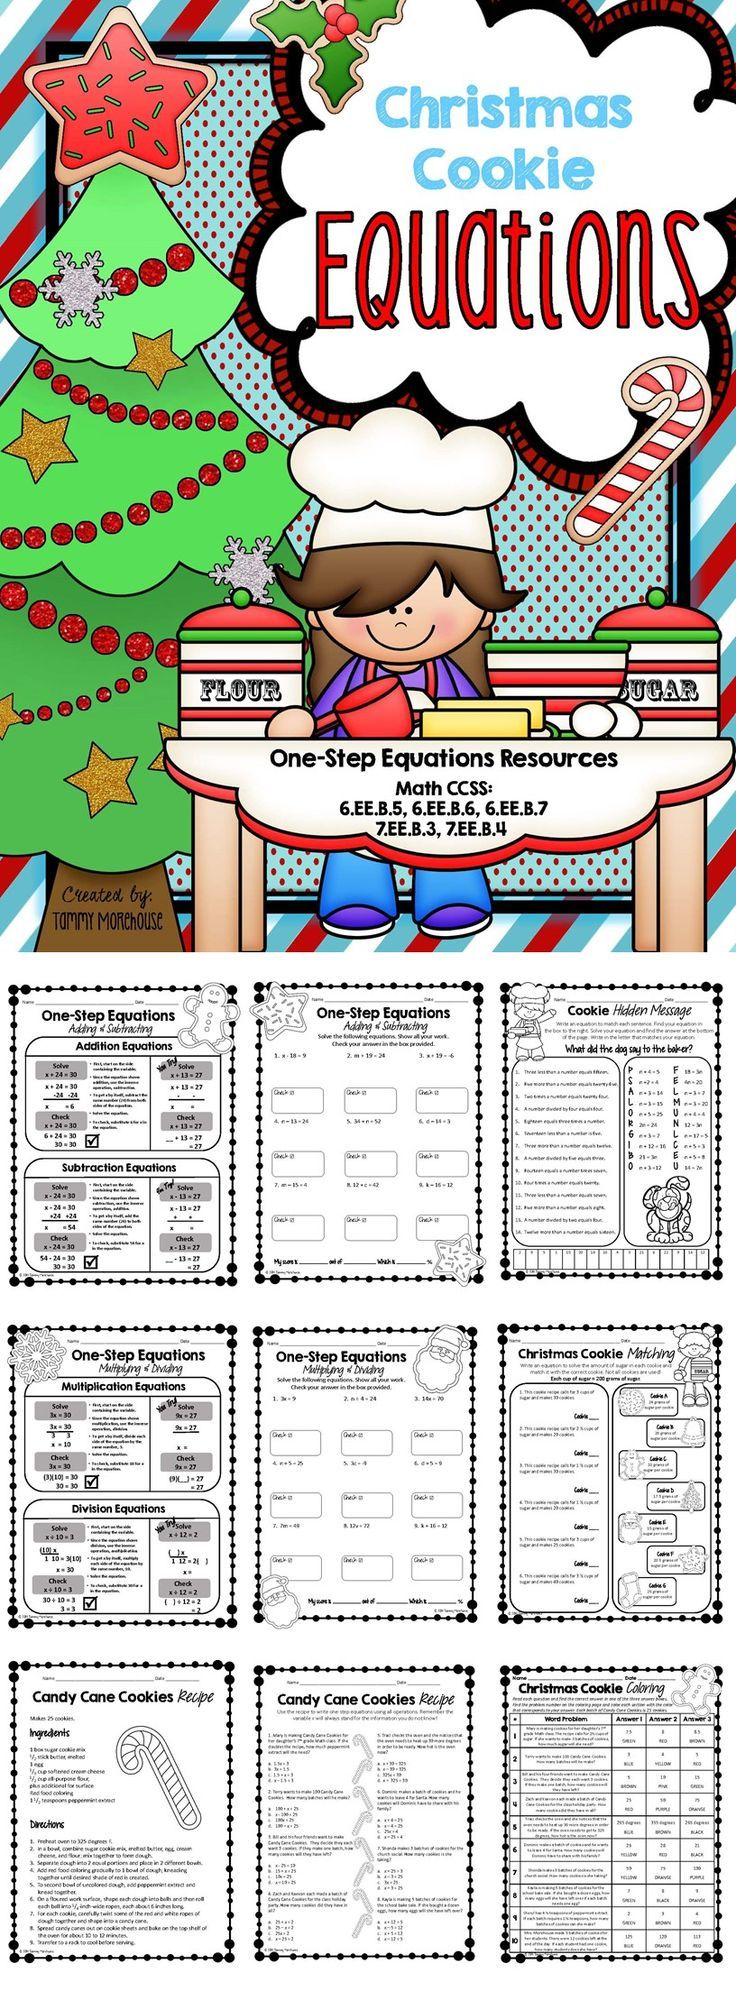 Christmas One Step Equations Resources One Step Equations Equations Addition And Subtraction Lesson one step equations addition